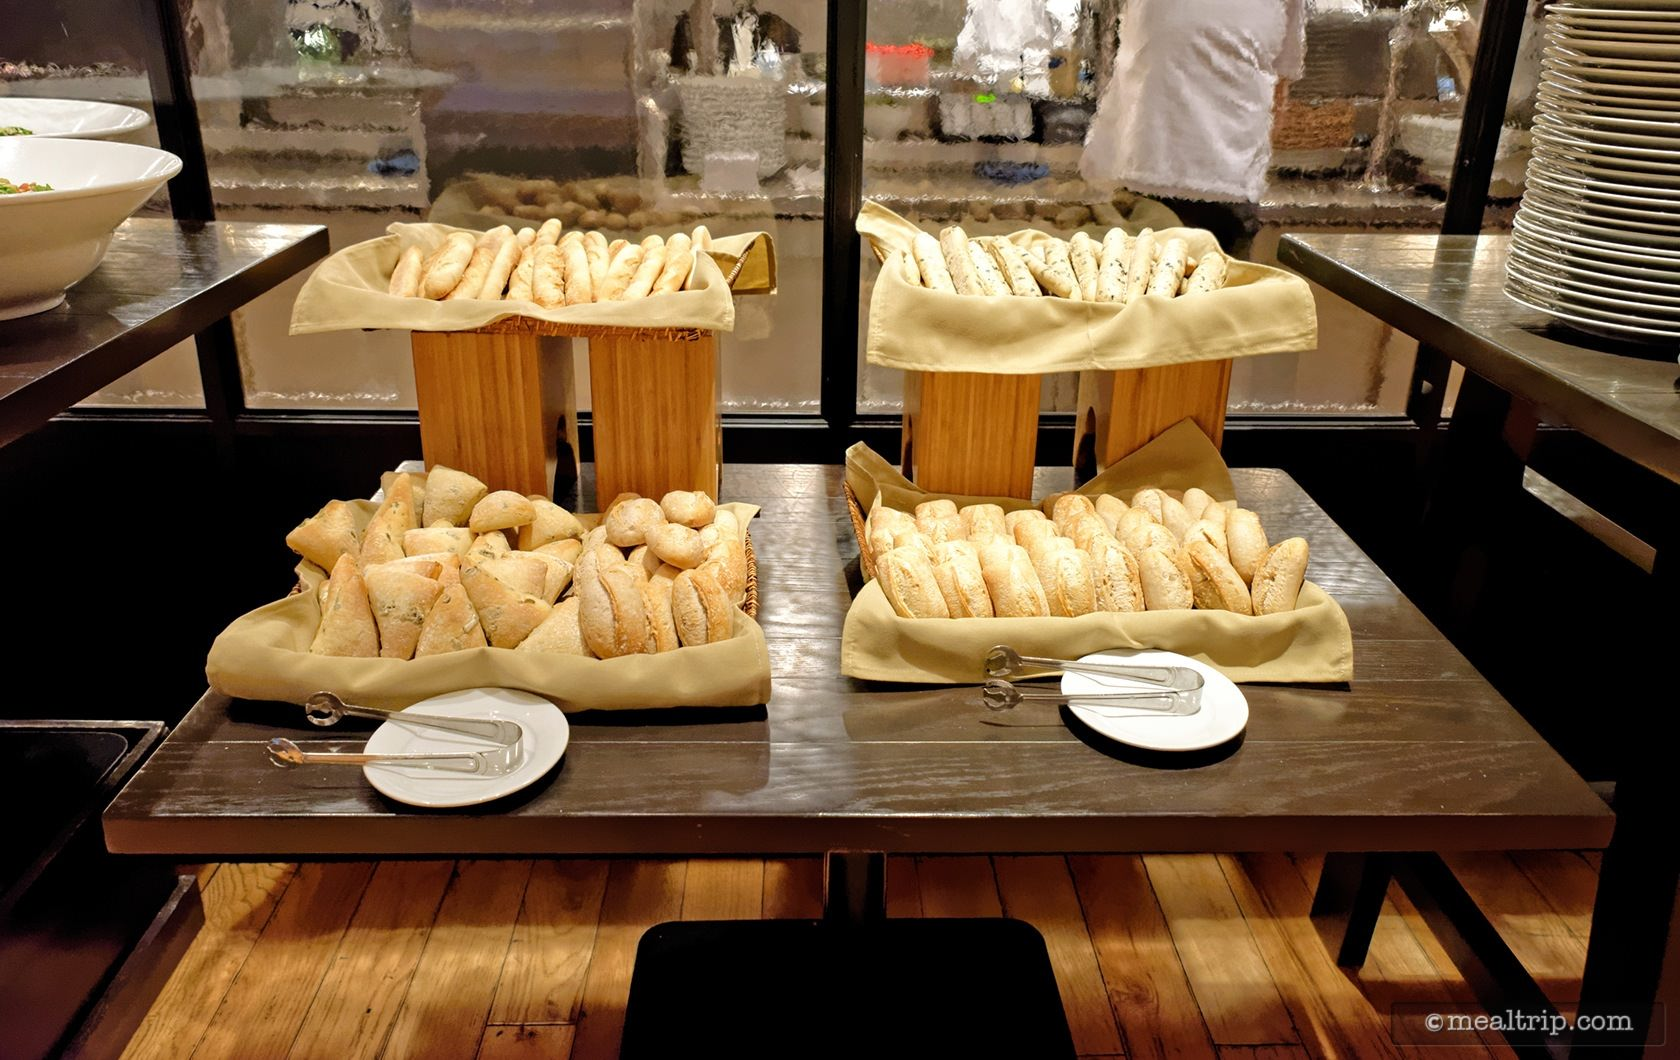 A Bread Station at the Sunday Bubbles Brunch Event